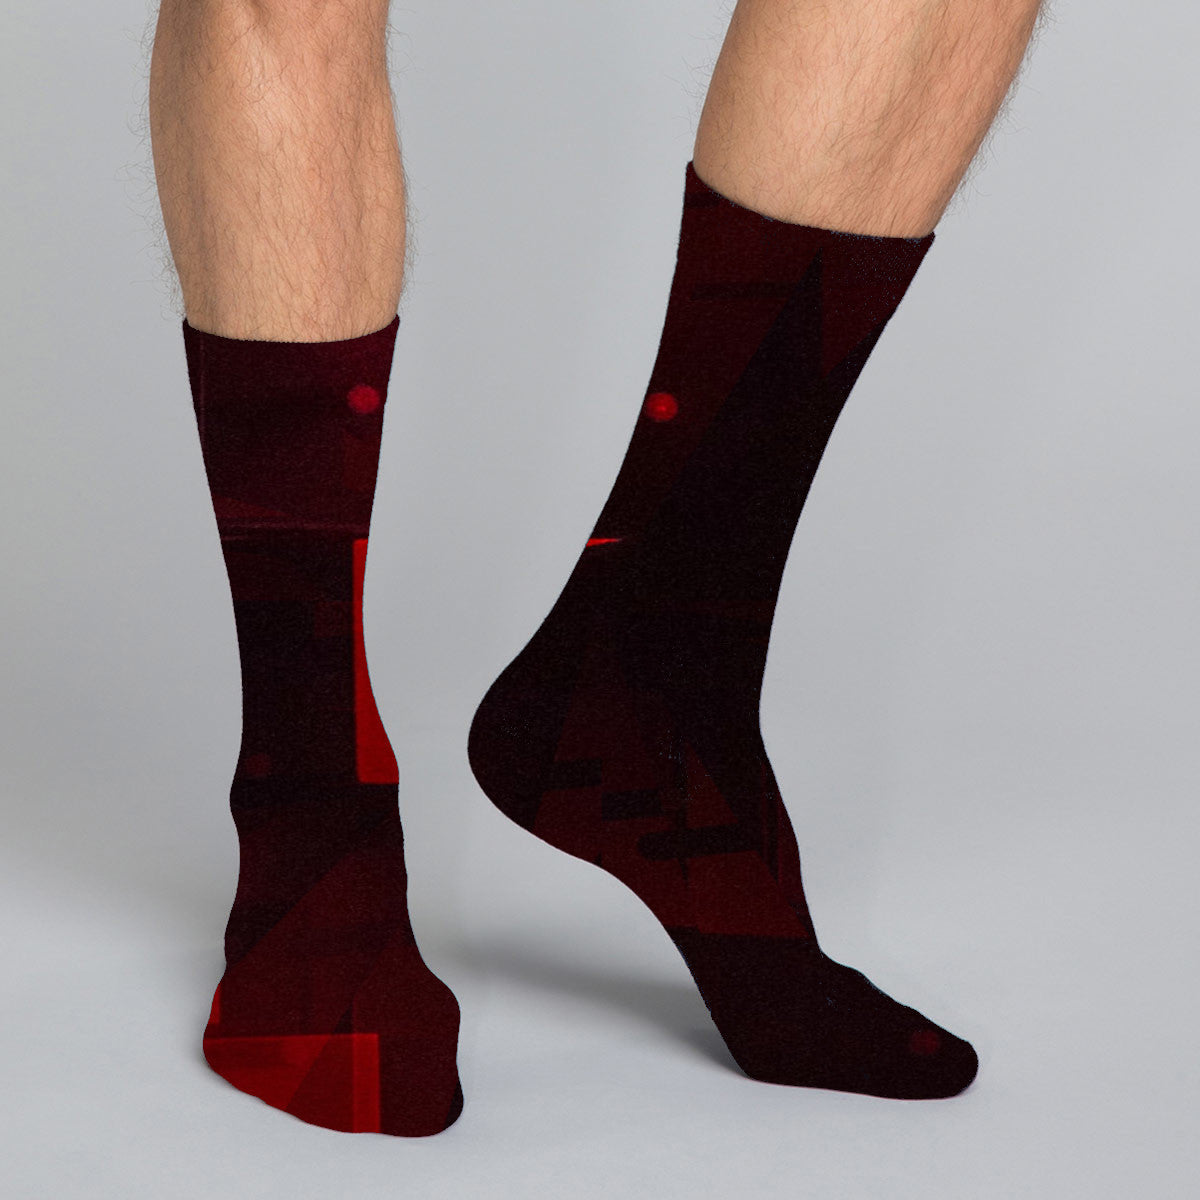 Men's casual crew socks in unique colorful design celebrating food, fashion, fitness, fun